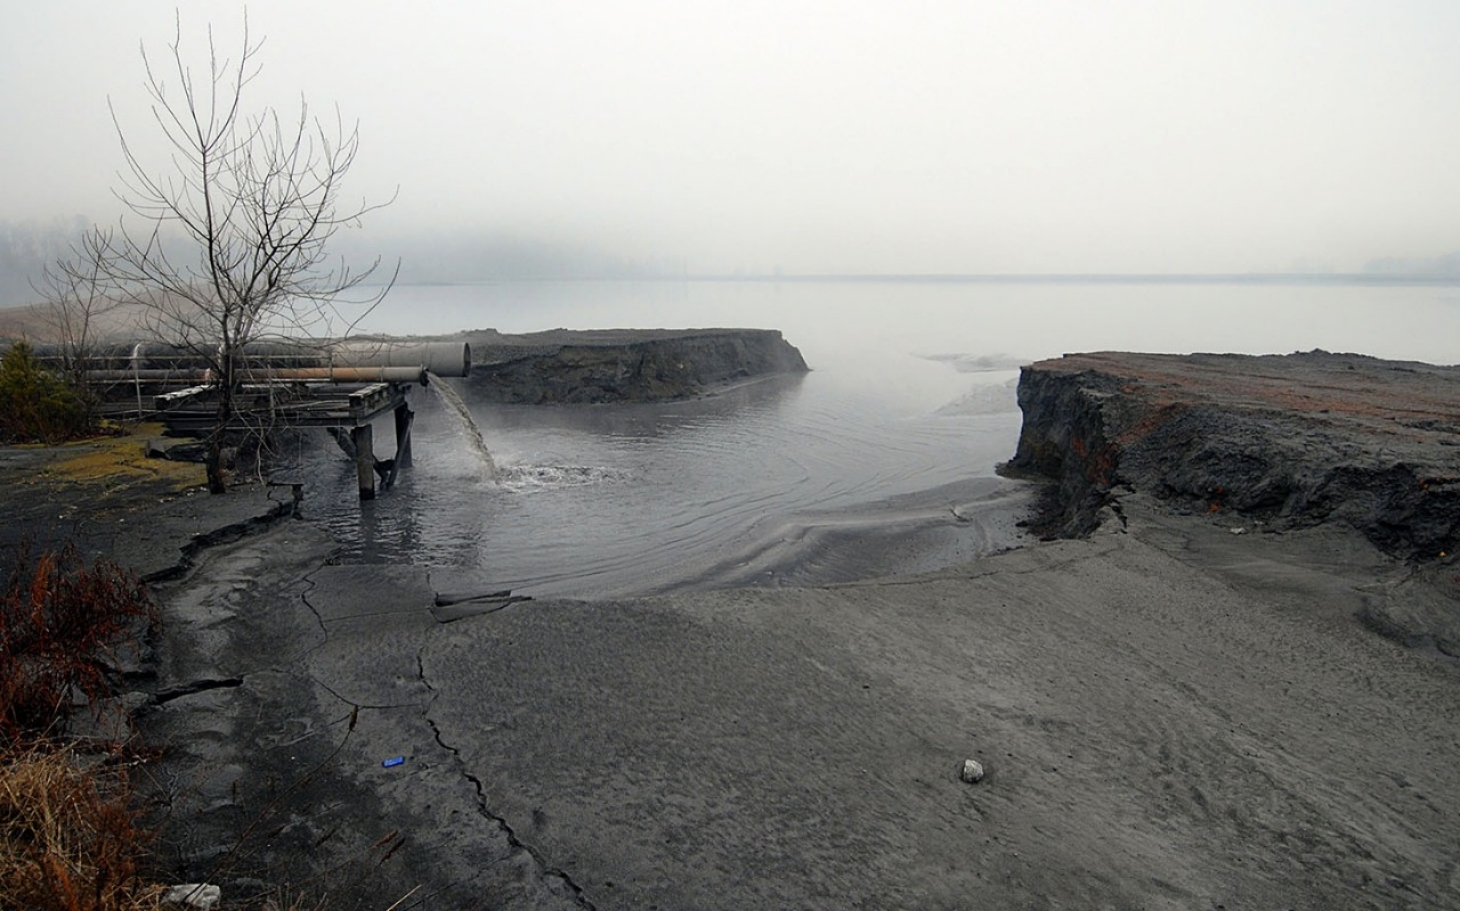 Ash From Coal ~ Energy co says removal of coal ash ponds could take